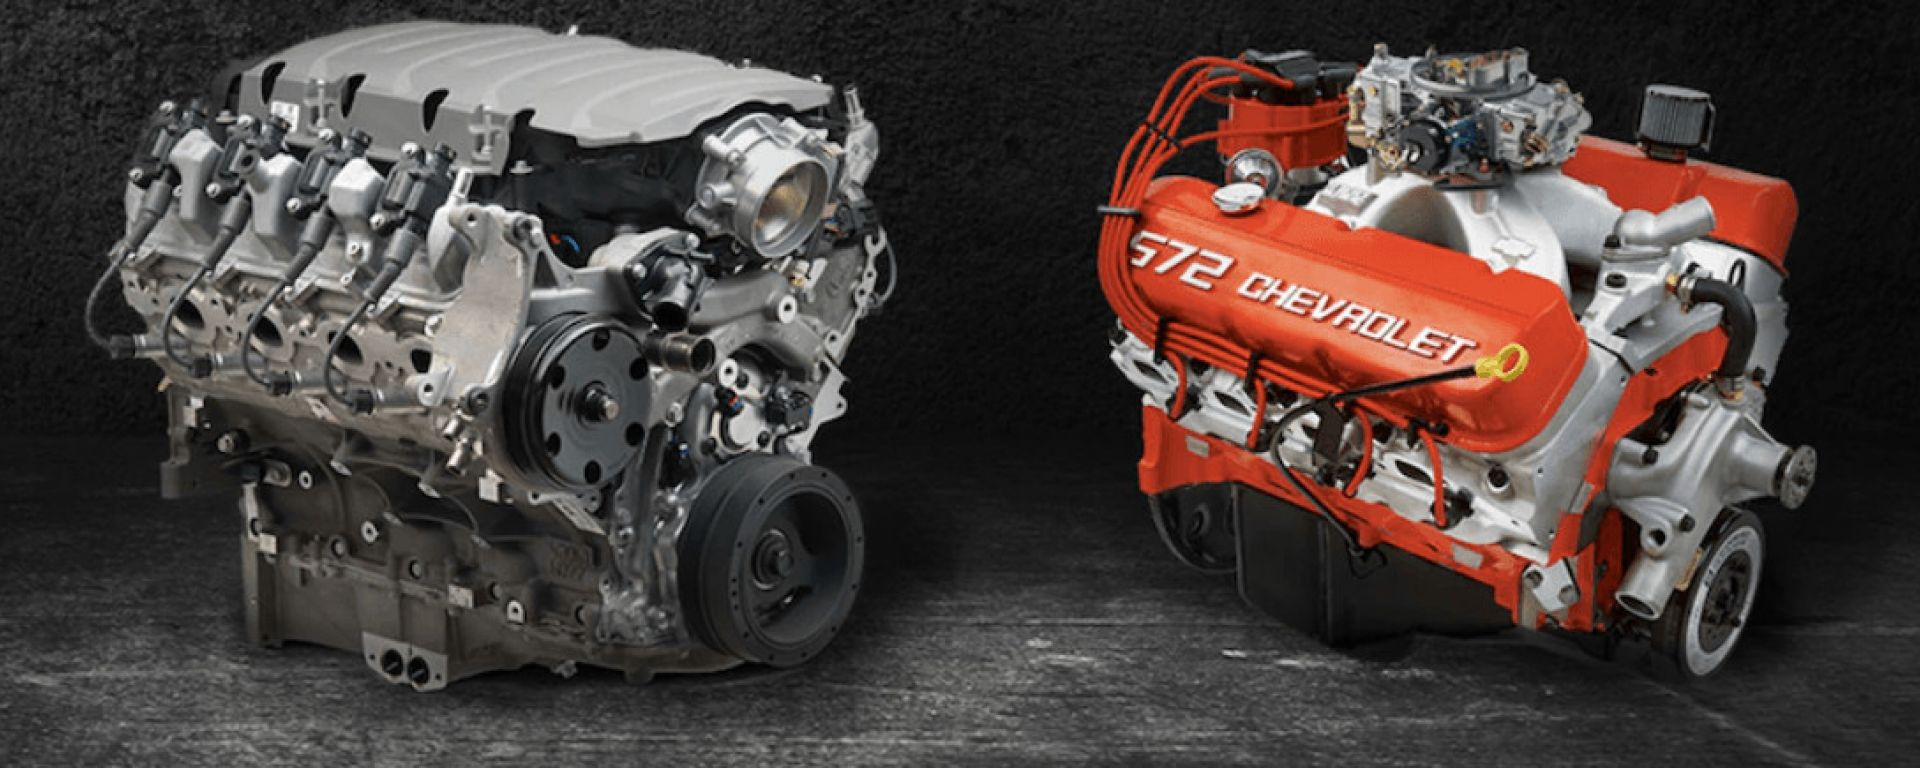 Crate engine Chevrolet